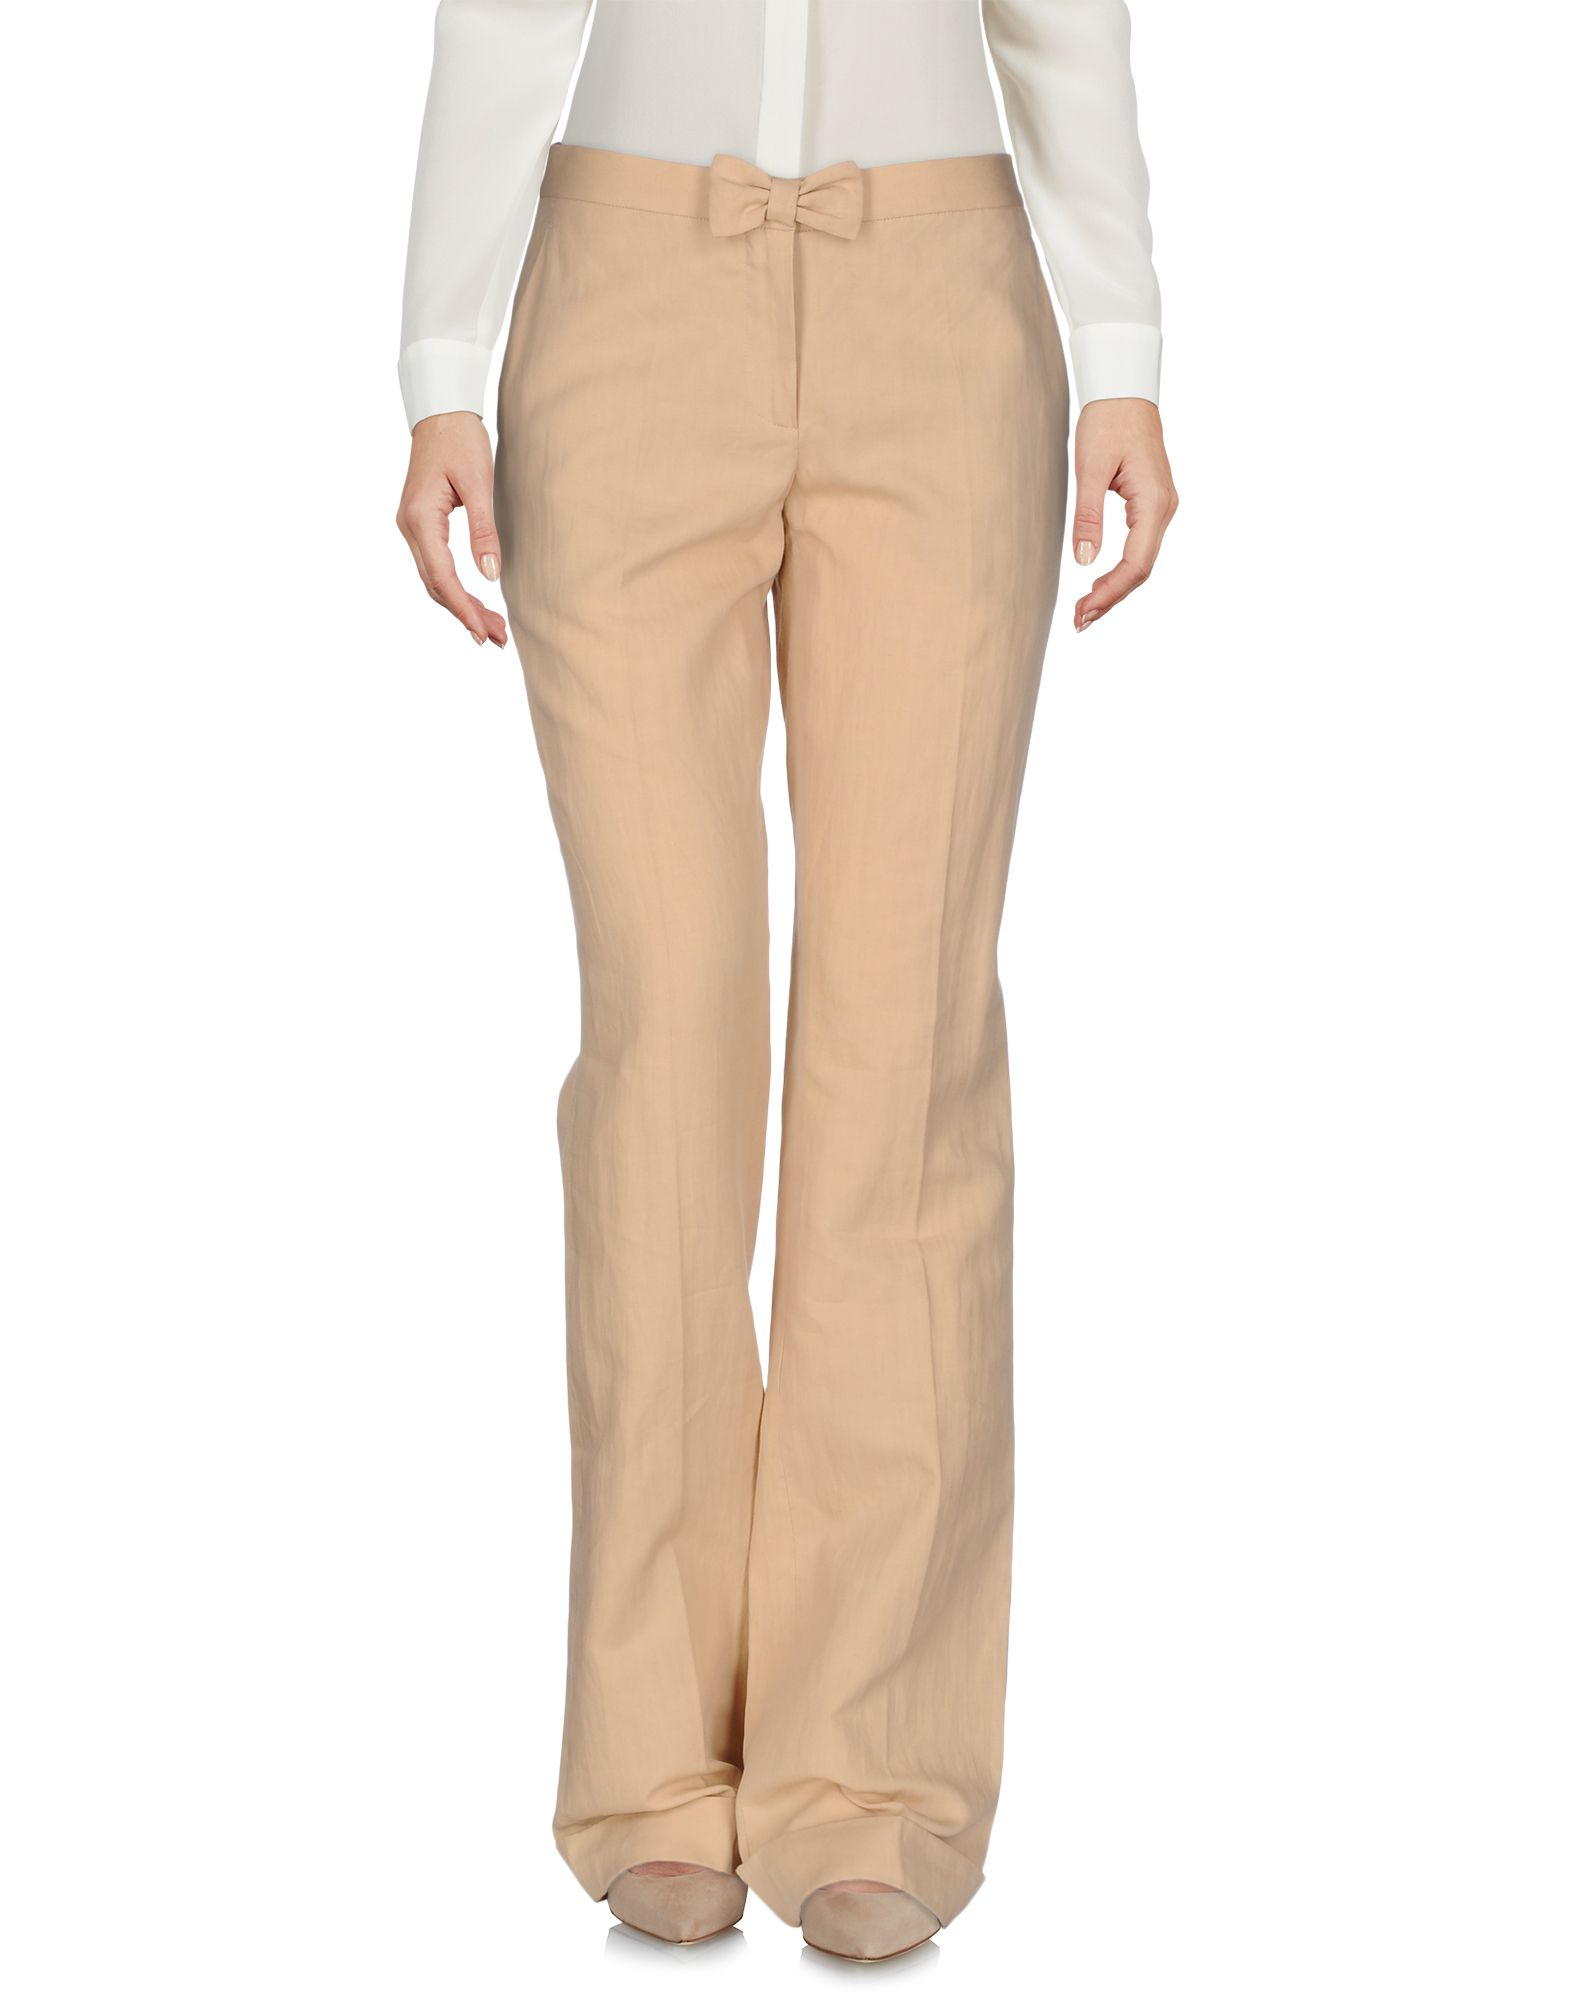 MOSCHINO CHEAP AND CHIC Casual Pants in Sand